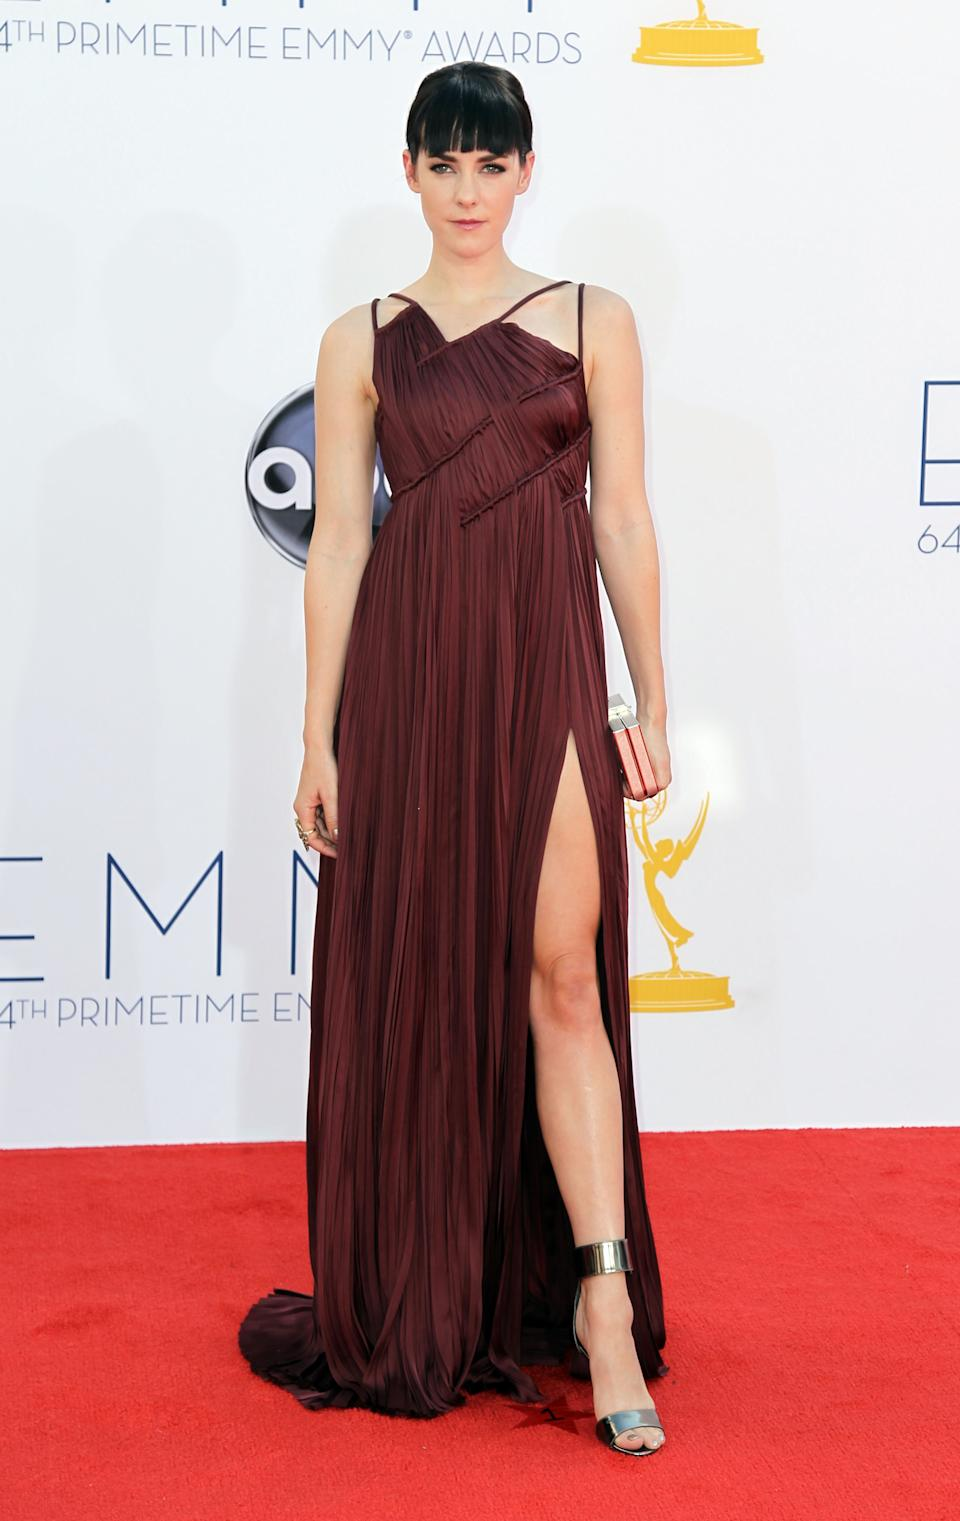 Jena Malone arrives at the 64th Primetime Emmy Awards at the Nokia Theatre on Sunday, Sept. 23, 2012, in Los Angeles. (Photo by Matt Sayles/Invision/AP)